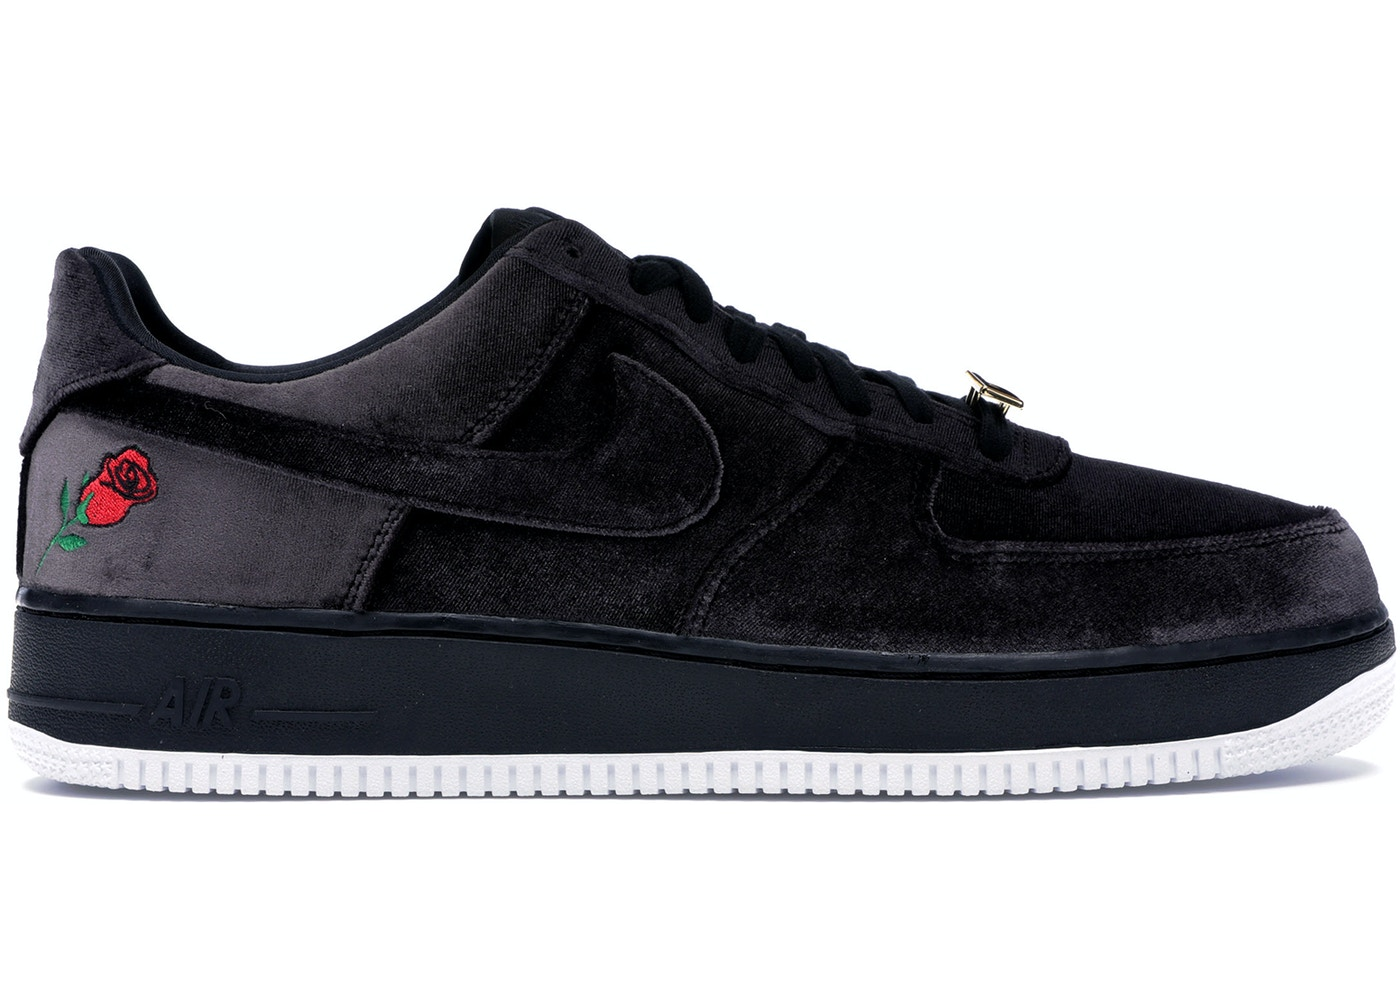 the latest 7a3fc 2f6c2 Air Force 1 Low Rose Velvet - AH8462-003